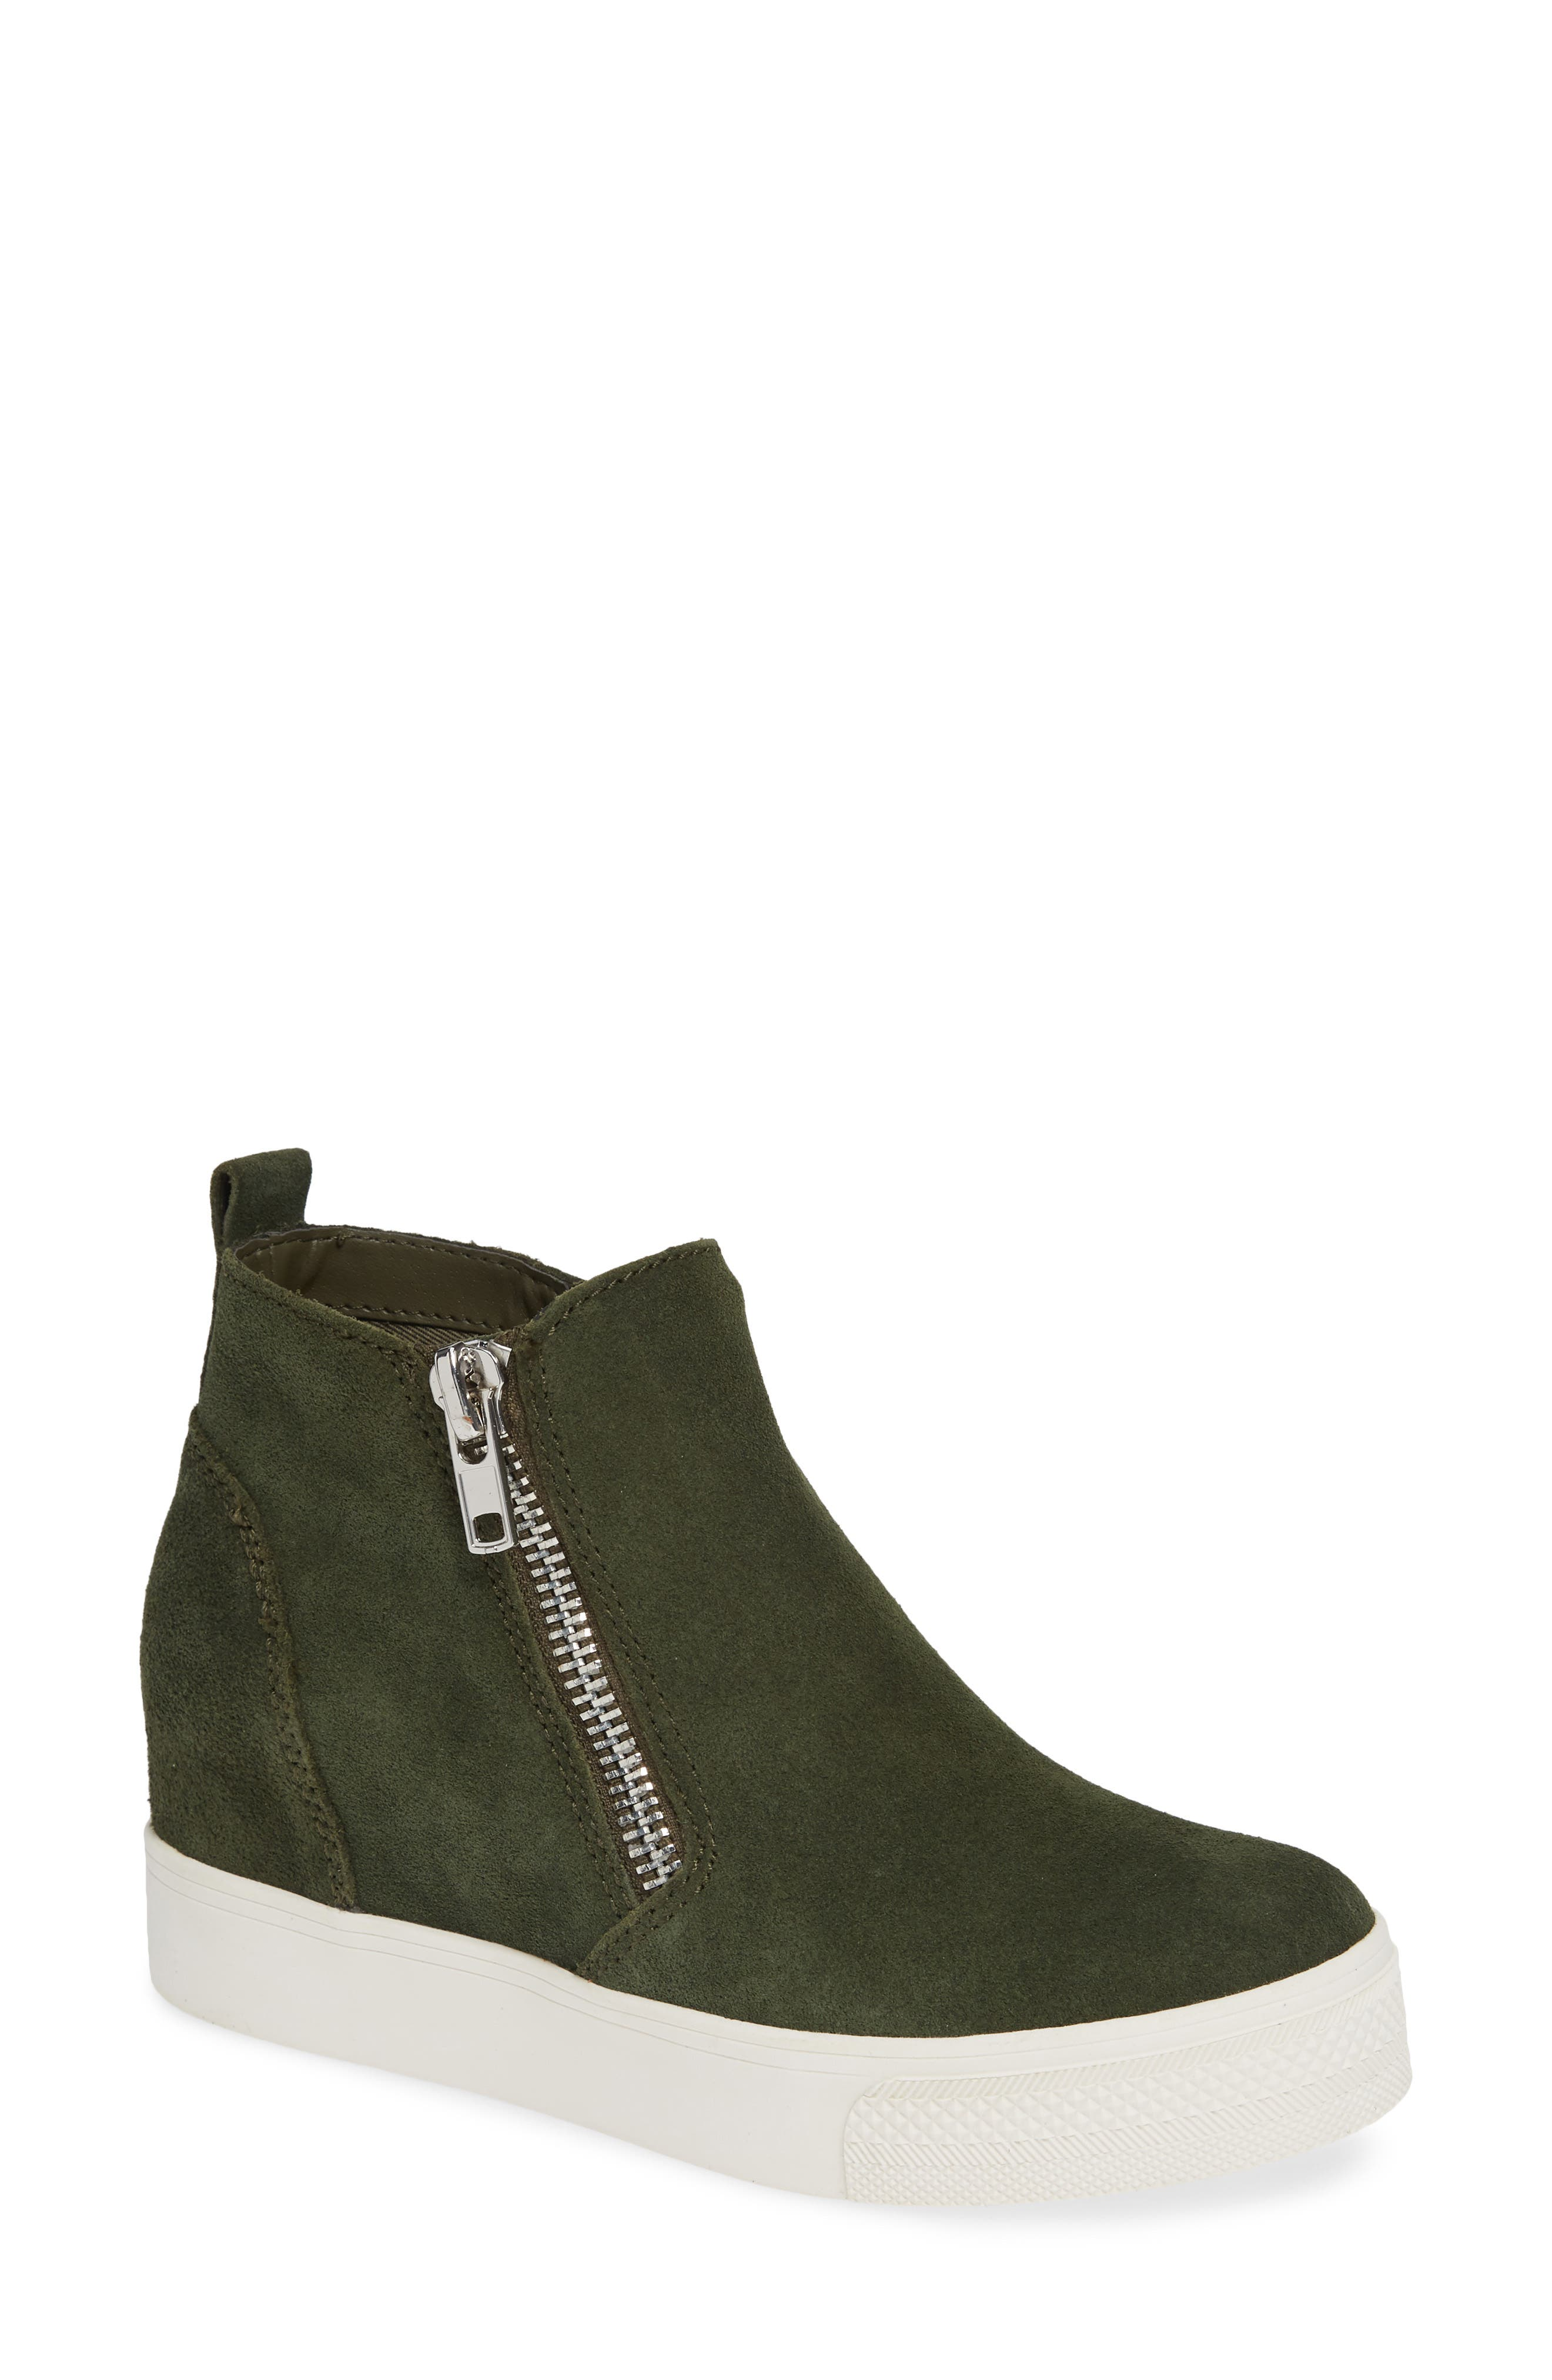 549dbf543f6 High Top Wedge Sneakers for Women